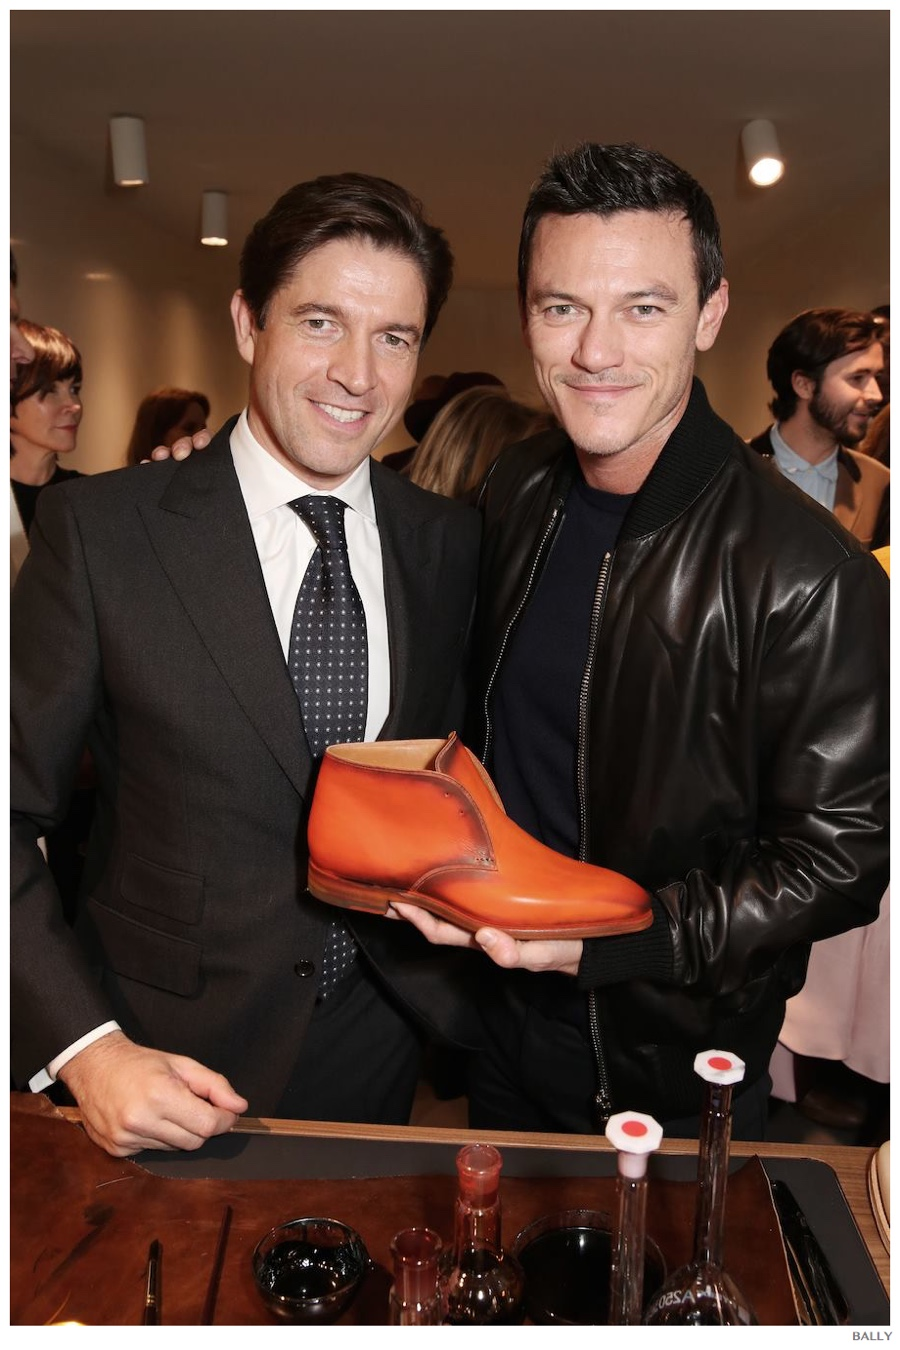 Showing off his Bally Made-to-Color shoes, Luke Evans poses with Bally CEO Frédéric de Narp.